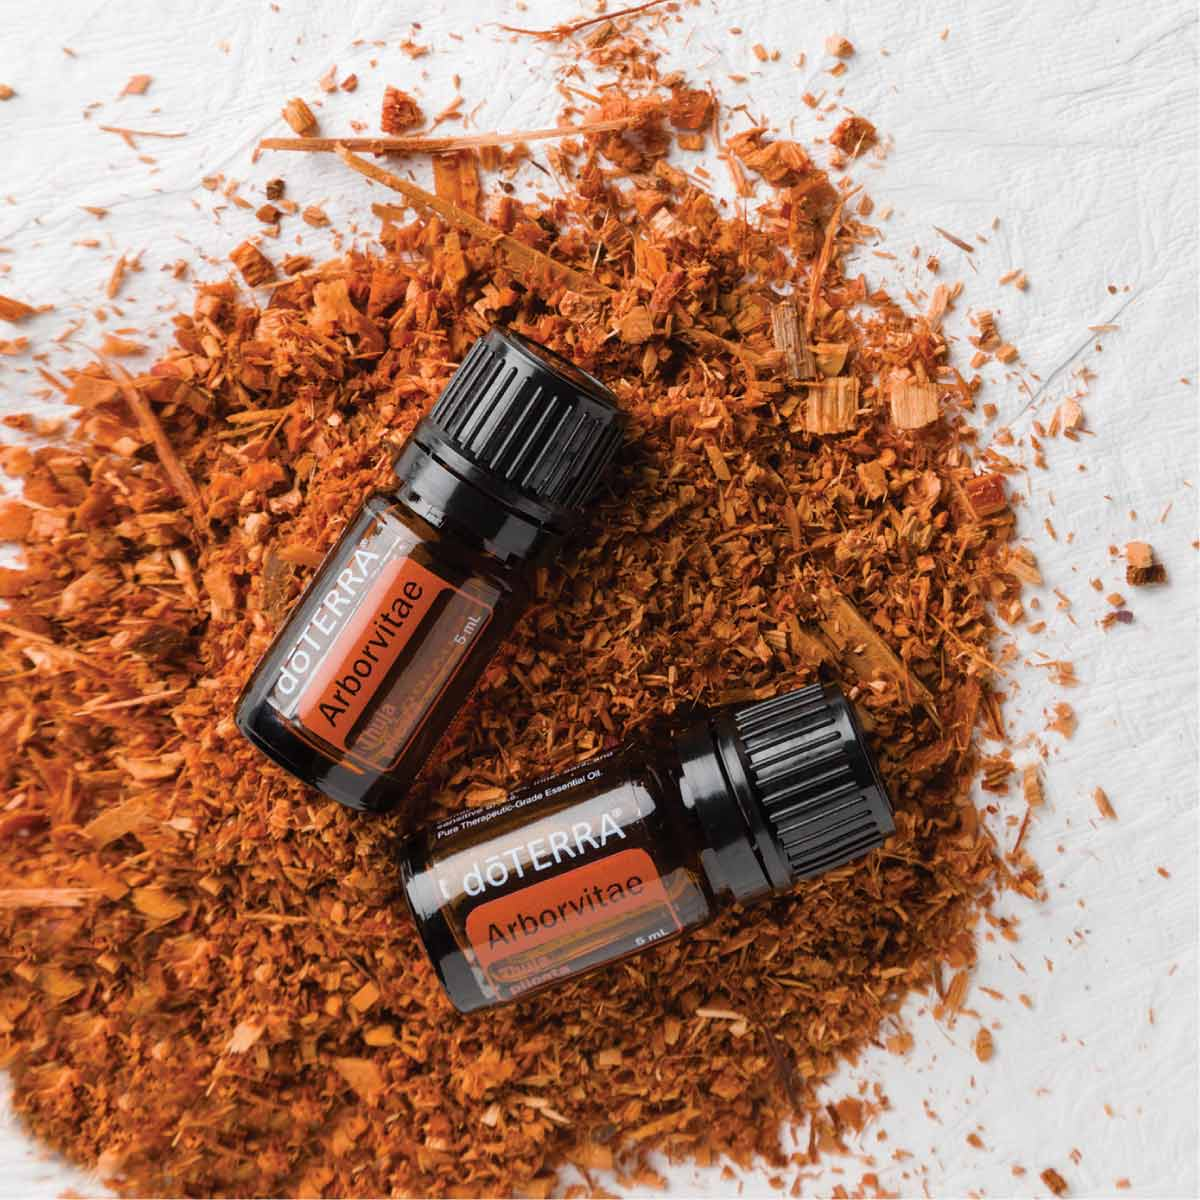 What are the best uses for Arborvitae oil? doTERRA Arborvitae essential oil can be used to cleanse the skin, preserve wood, or to make a unique essential oil diffuser blend.